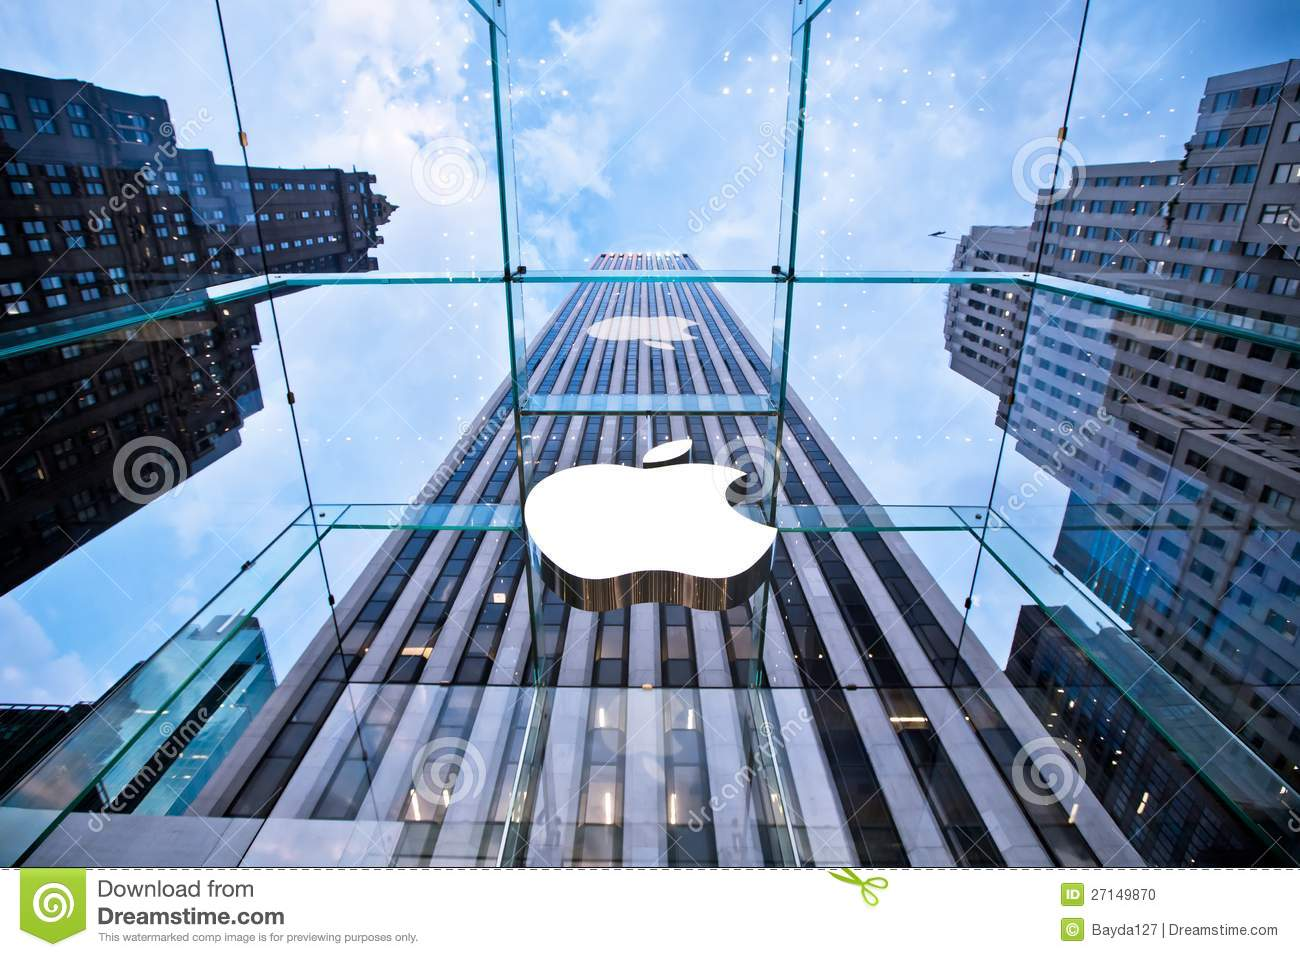 Head Apple store on Fifth Avenue in New York